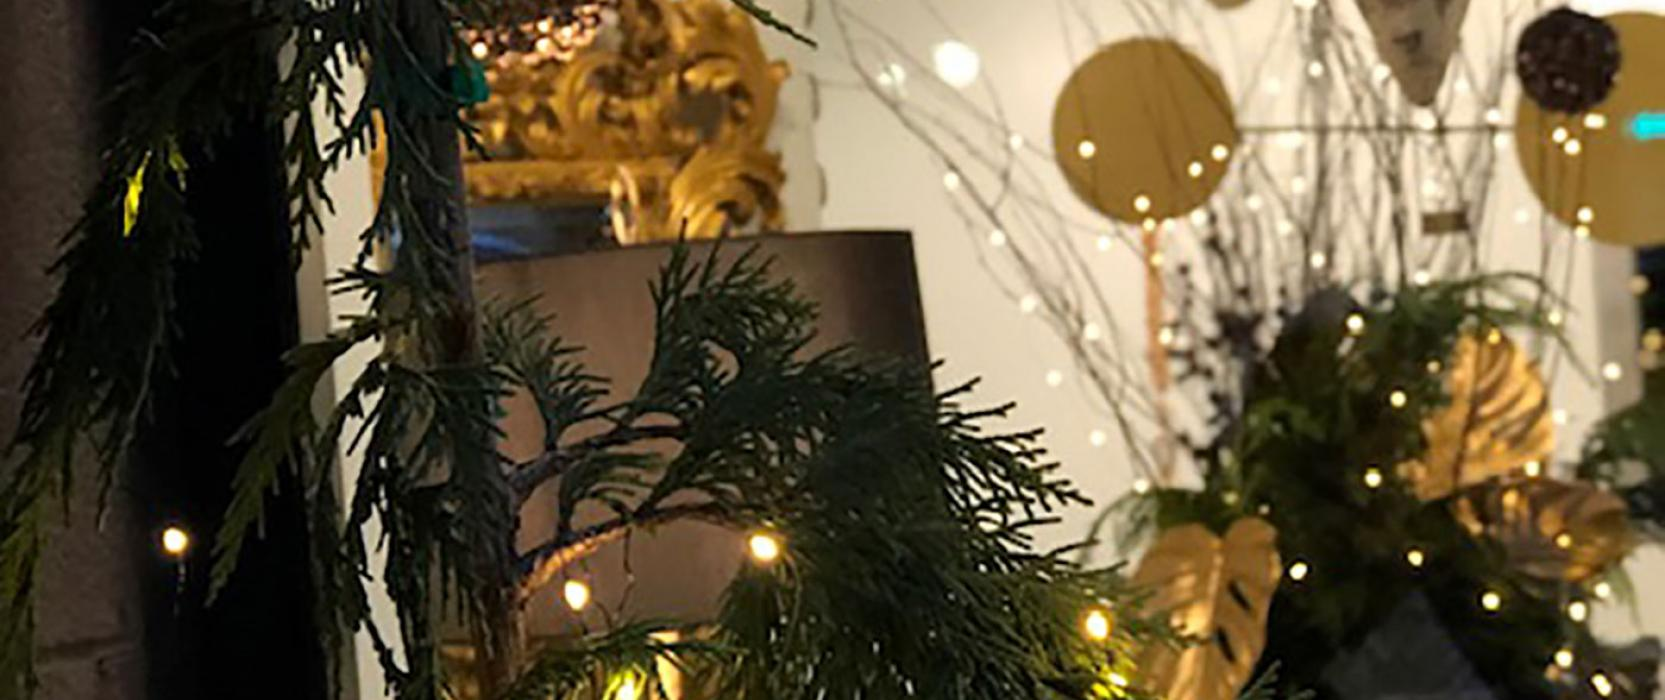 Holiday Trunks Shows Dec. 7 and 8 at ARTEFACT Home